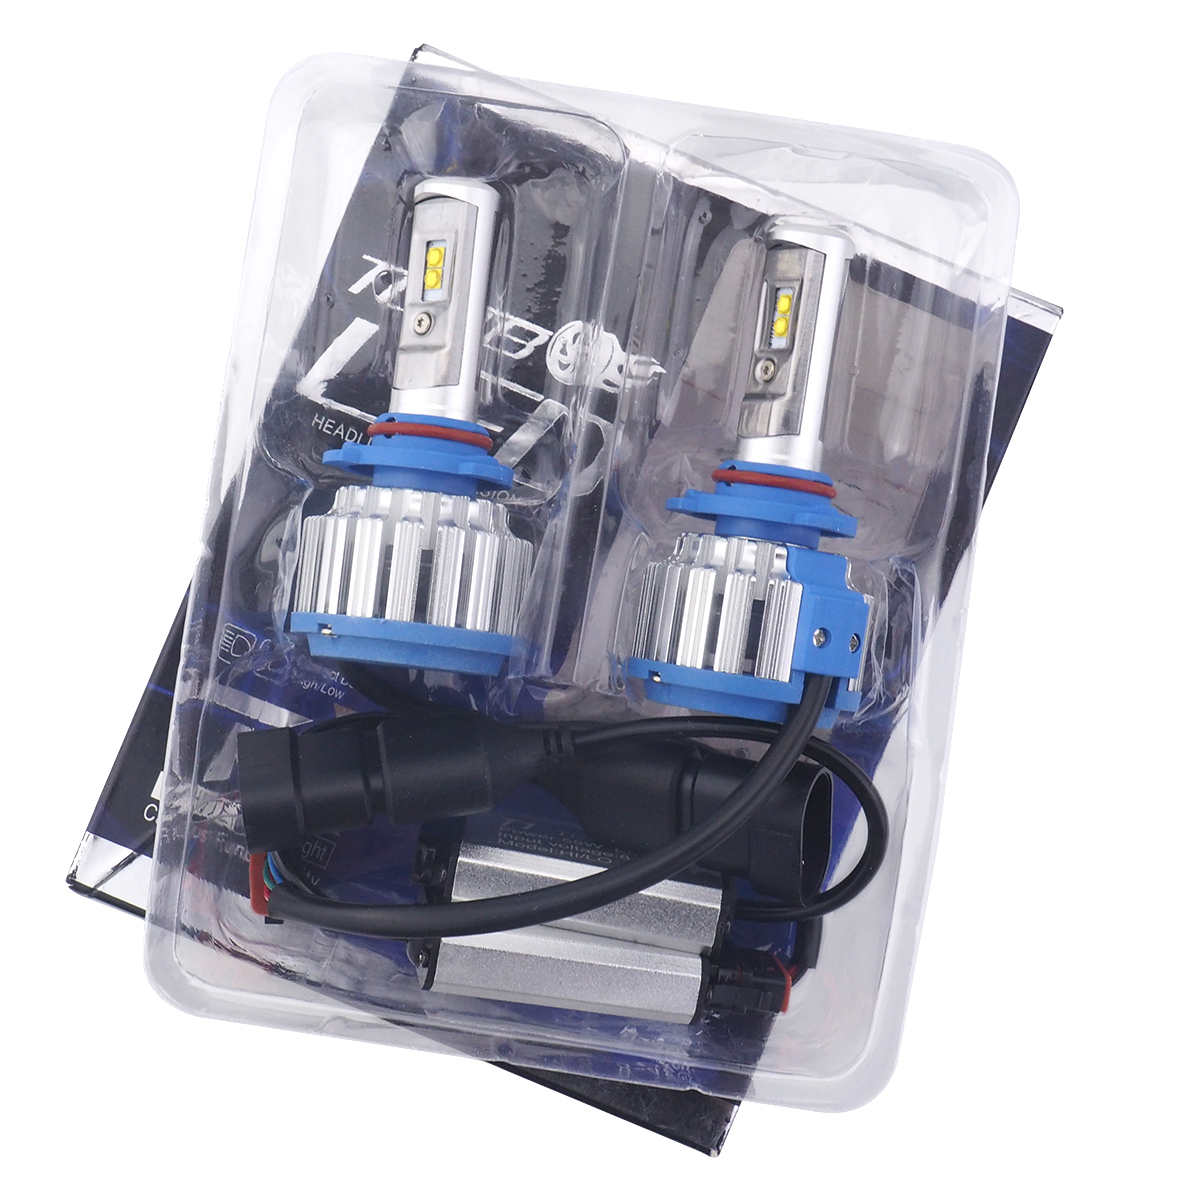 T1 Decoding Car LED Headlights Headlights Modification 9005 H1 H3 H7 H8 H9 H11 Highlight Light Bulb z90 in Car Headlight Bulbs LED from Automobiles Motorcycles